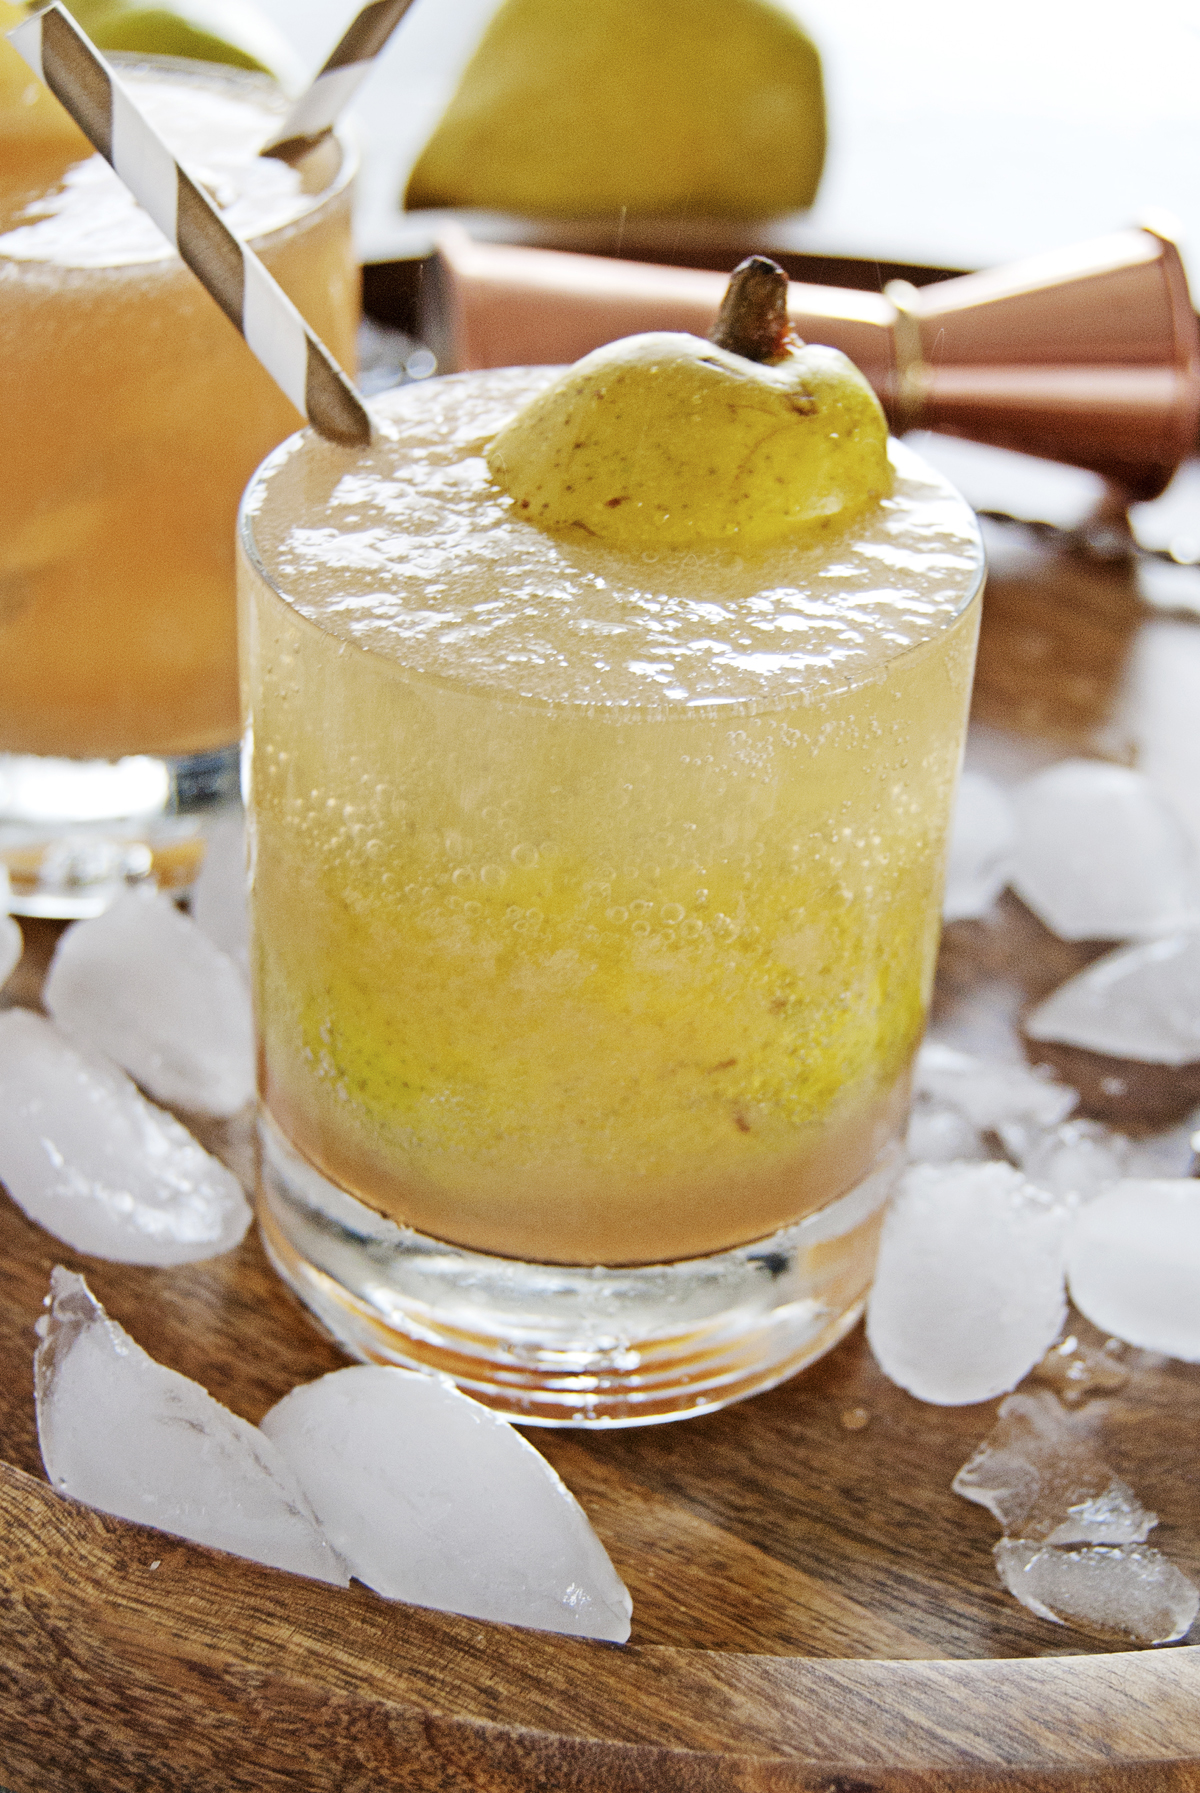 These cardamom pear spritzer cocktails feature delicious fresh pear juice, white rum, and a homemade honey cardamom simple syrup.